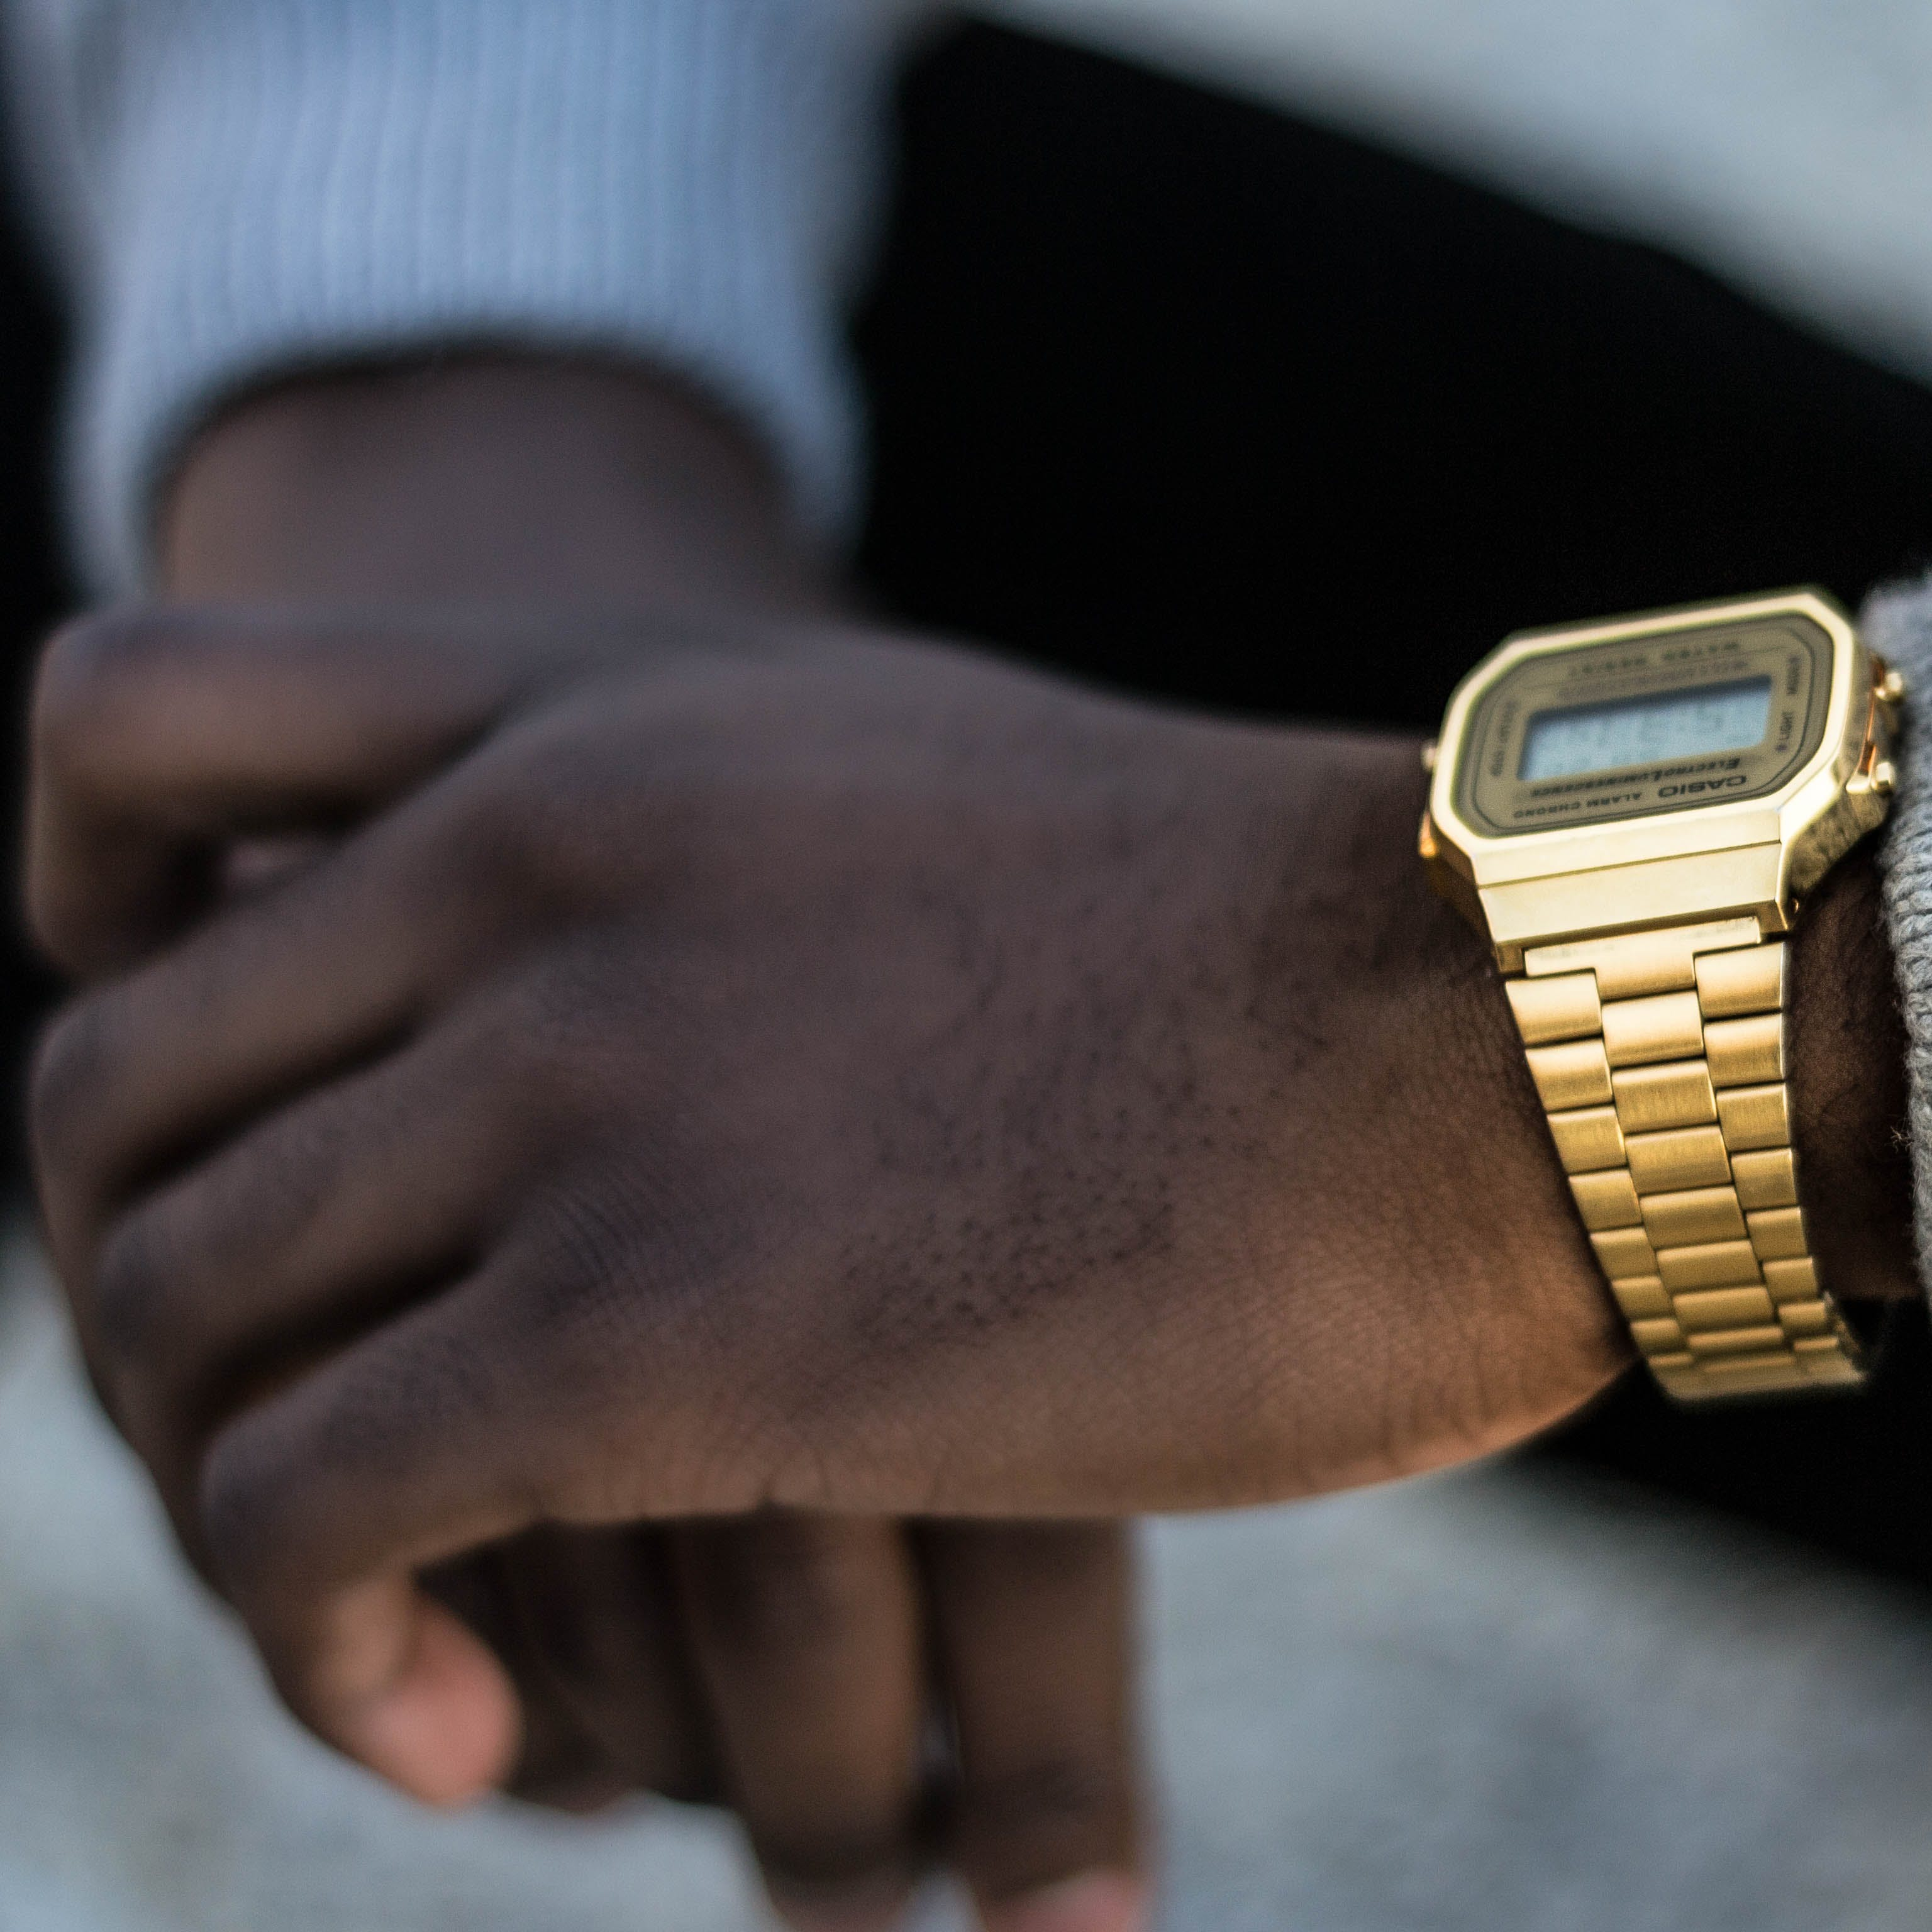 Person Wearing Gold-colored Casio Digital Watch With Linked Strap